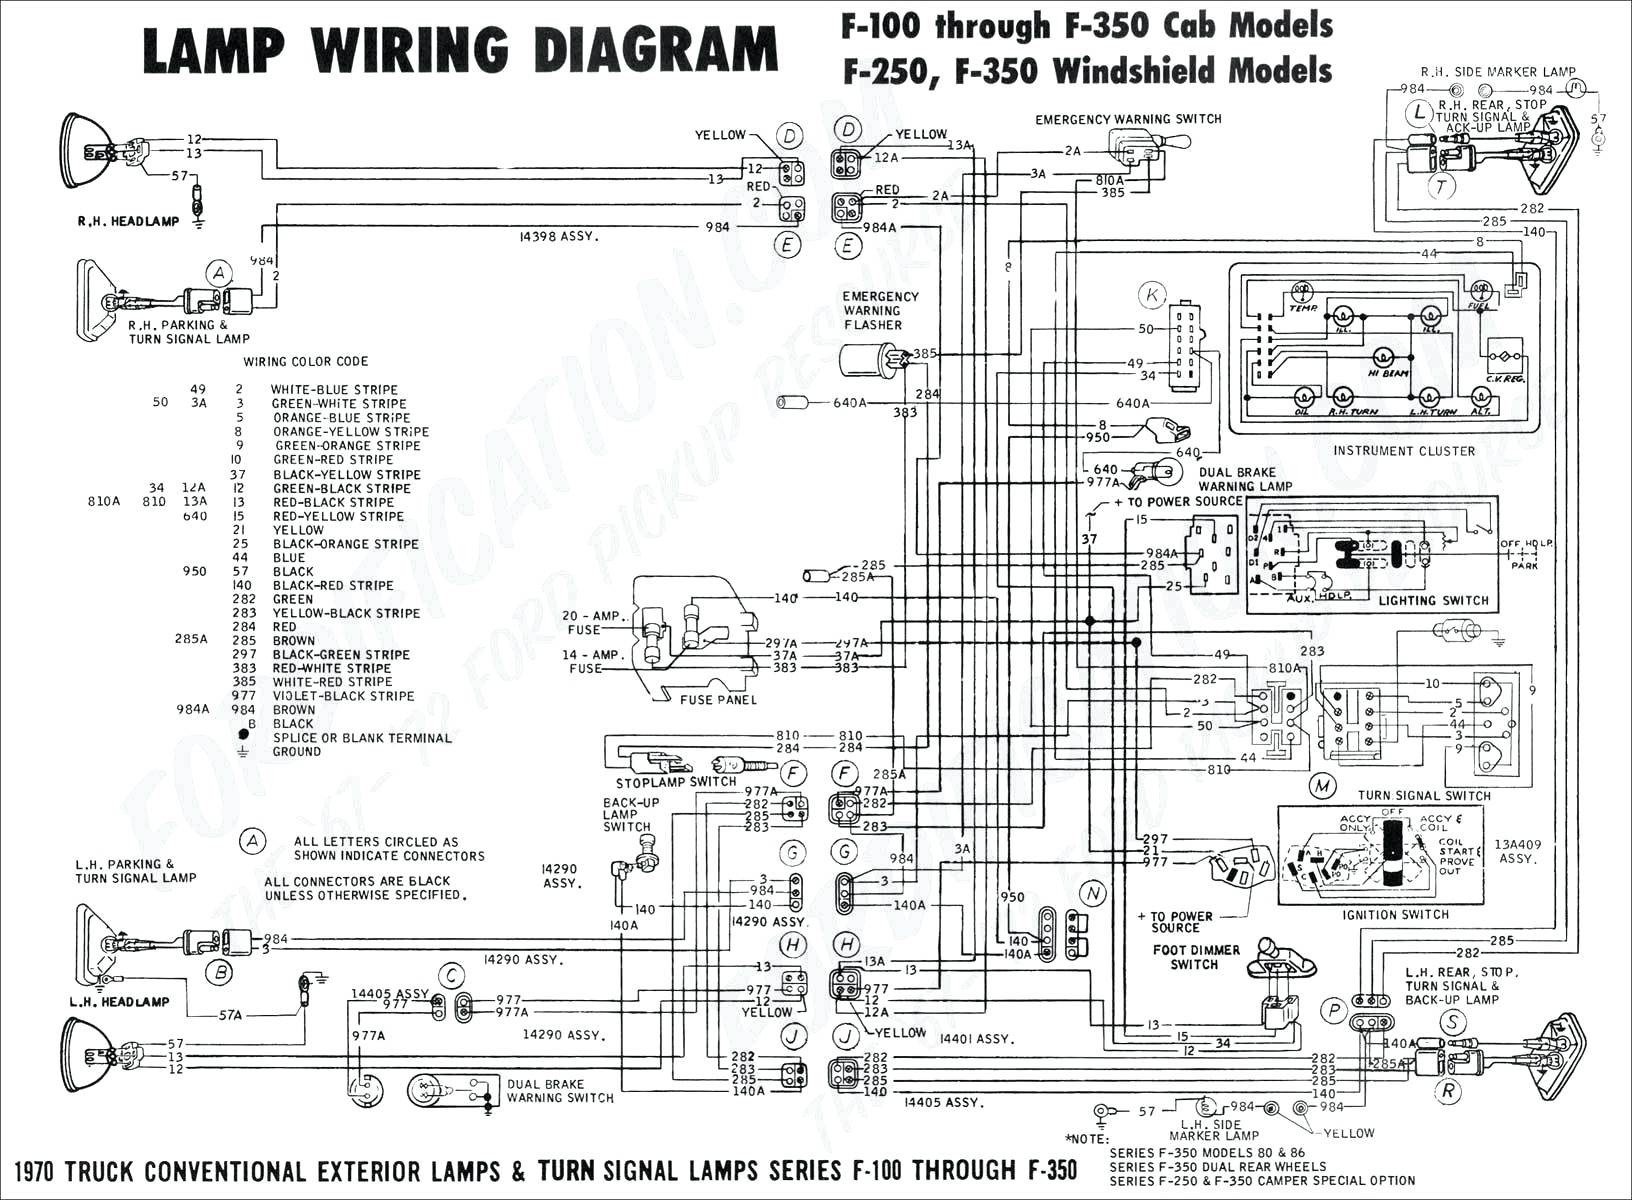 hight resolution of 2005 chevrolet wiring diagram wiring diagram name2005 chevy truck wiring diagram wiring diagram expert 2005 chevrolet